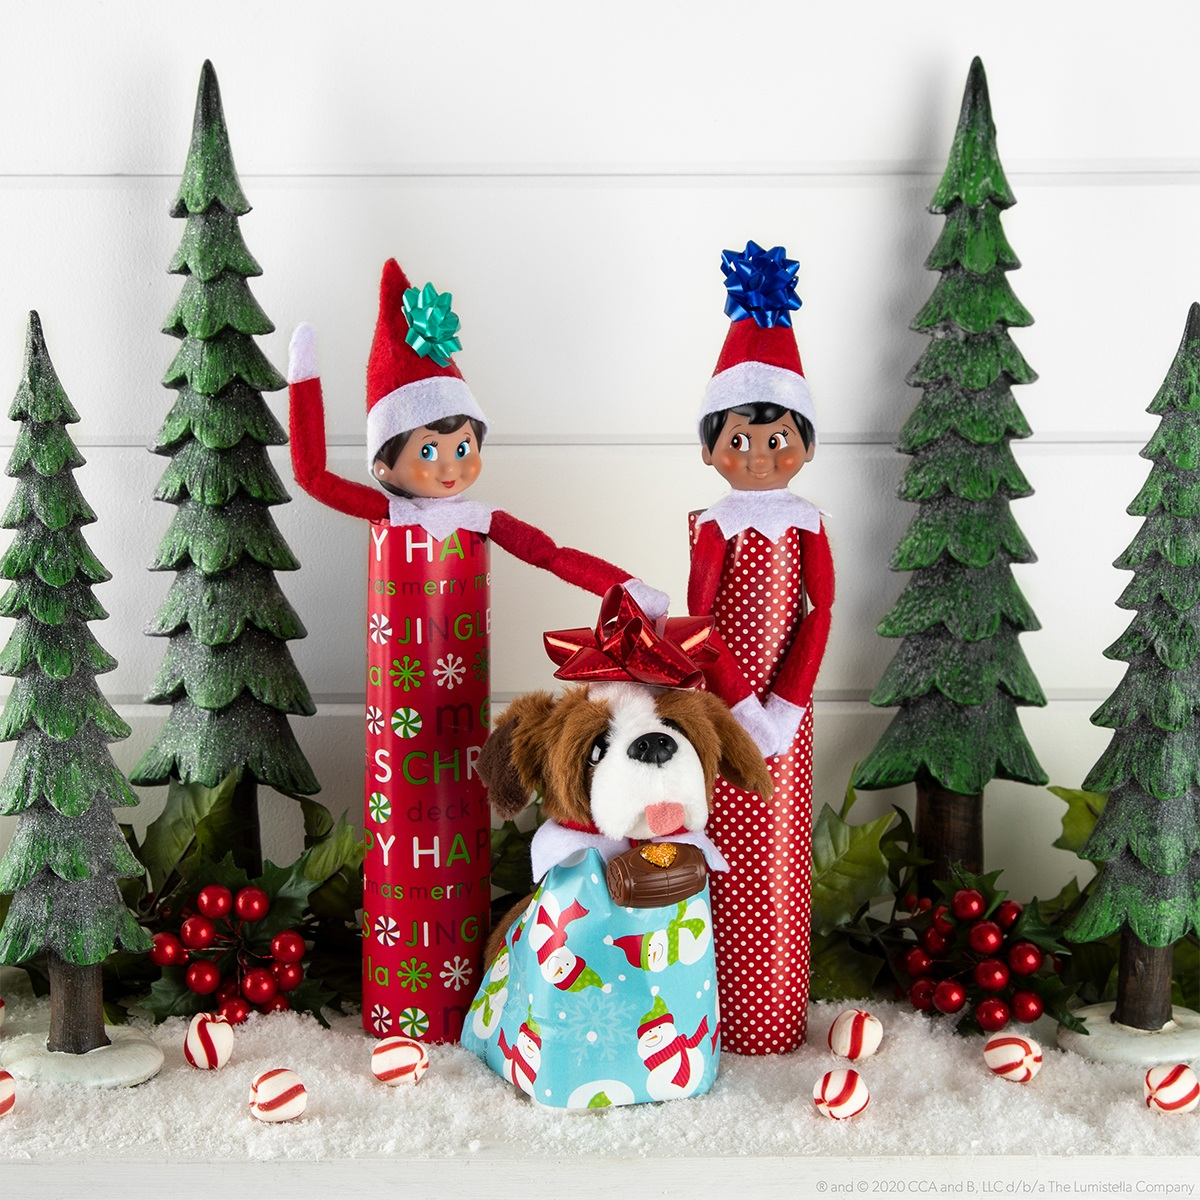 Elves wrapped up in wrapping paper